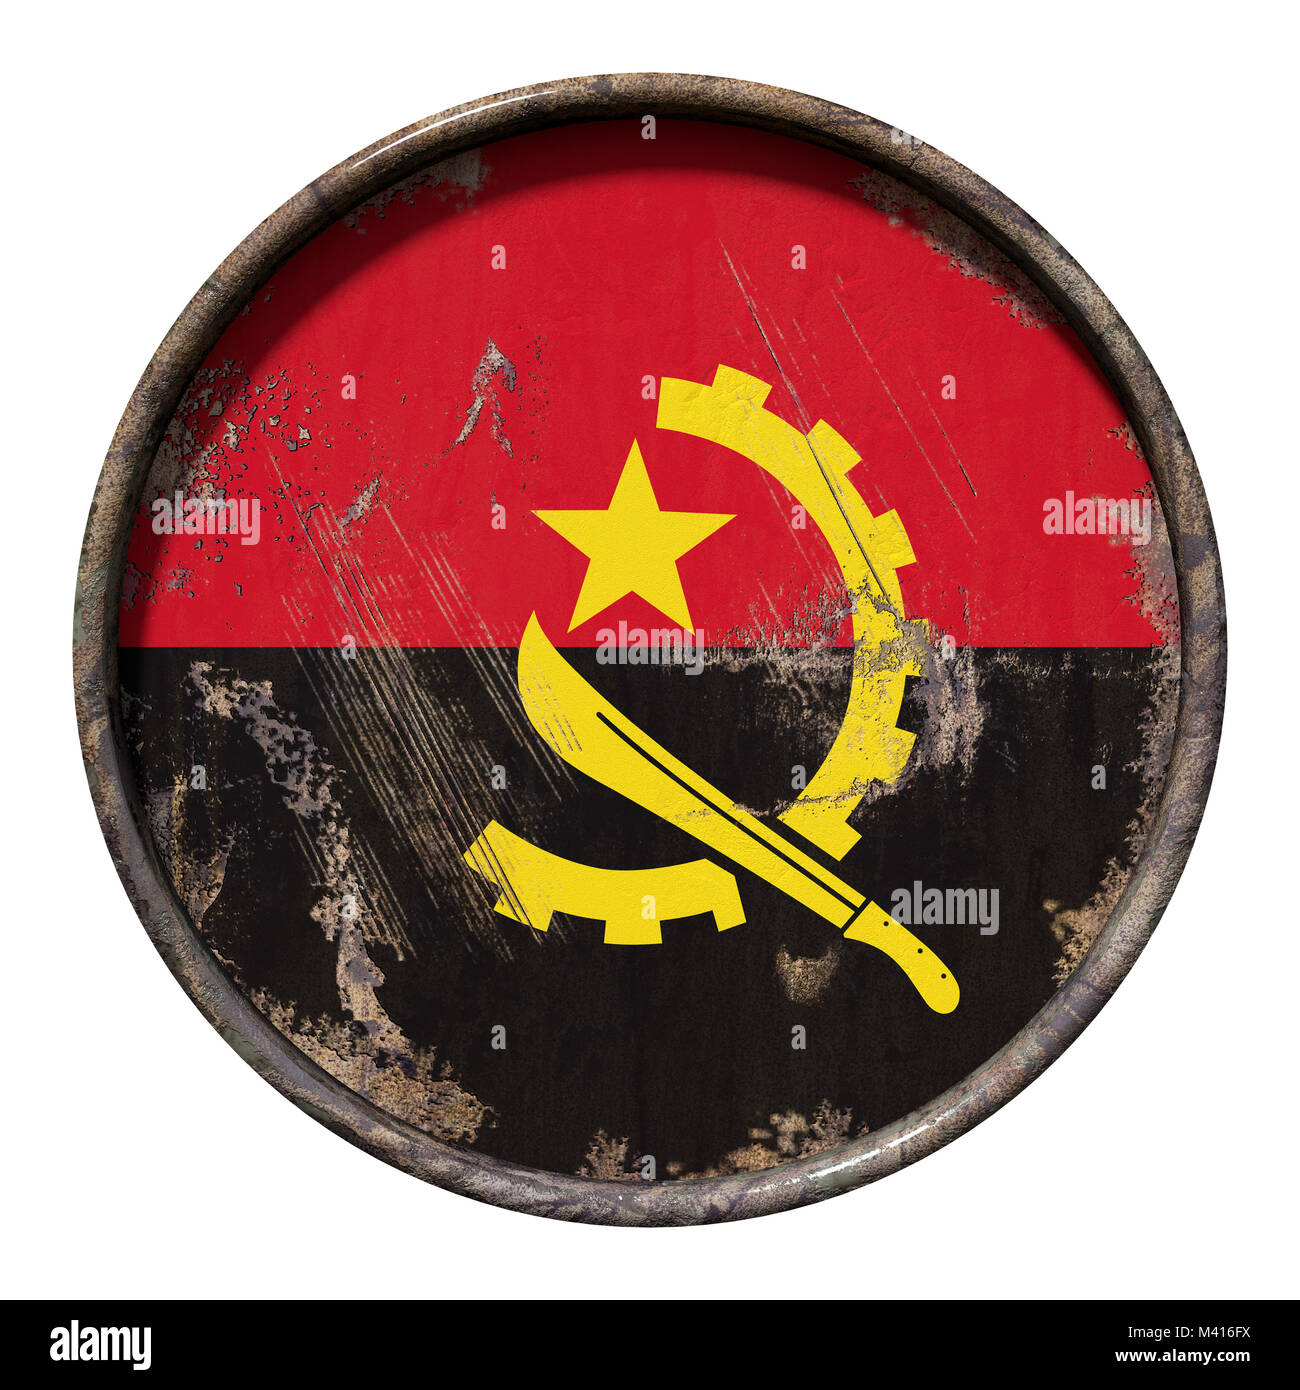 3d rendering of an Angola flag over a rusty metallic plate. Isolated on white background. - Stock Image